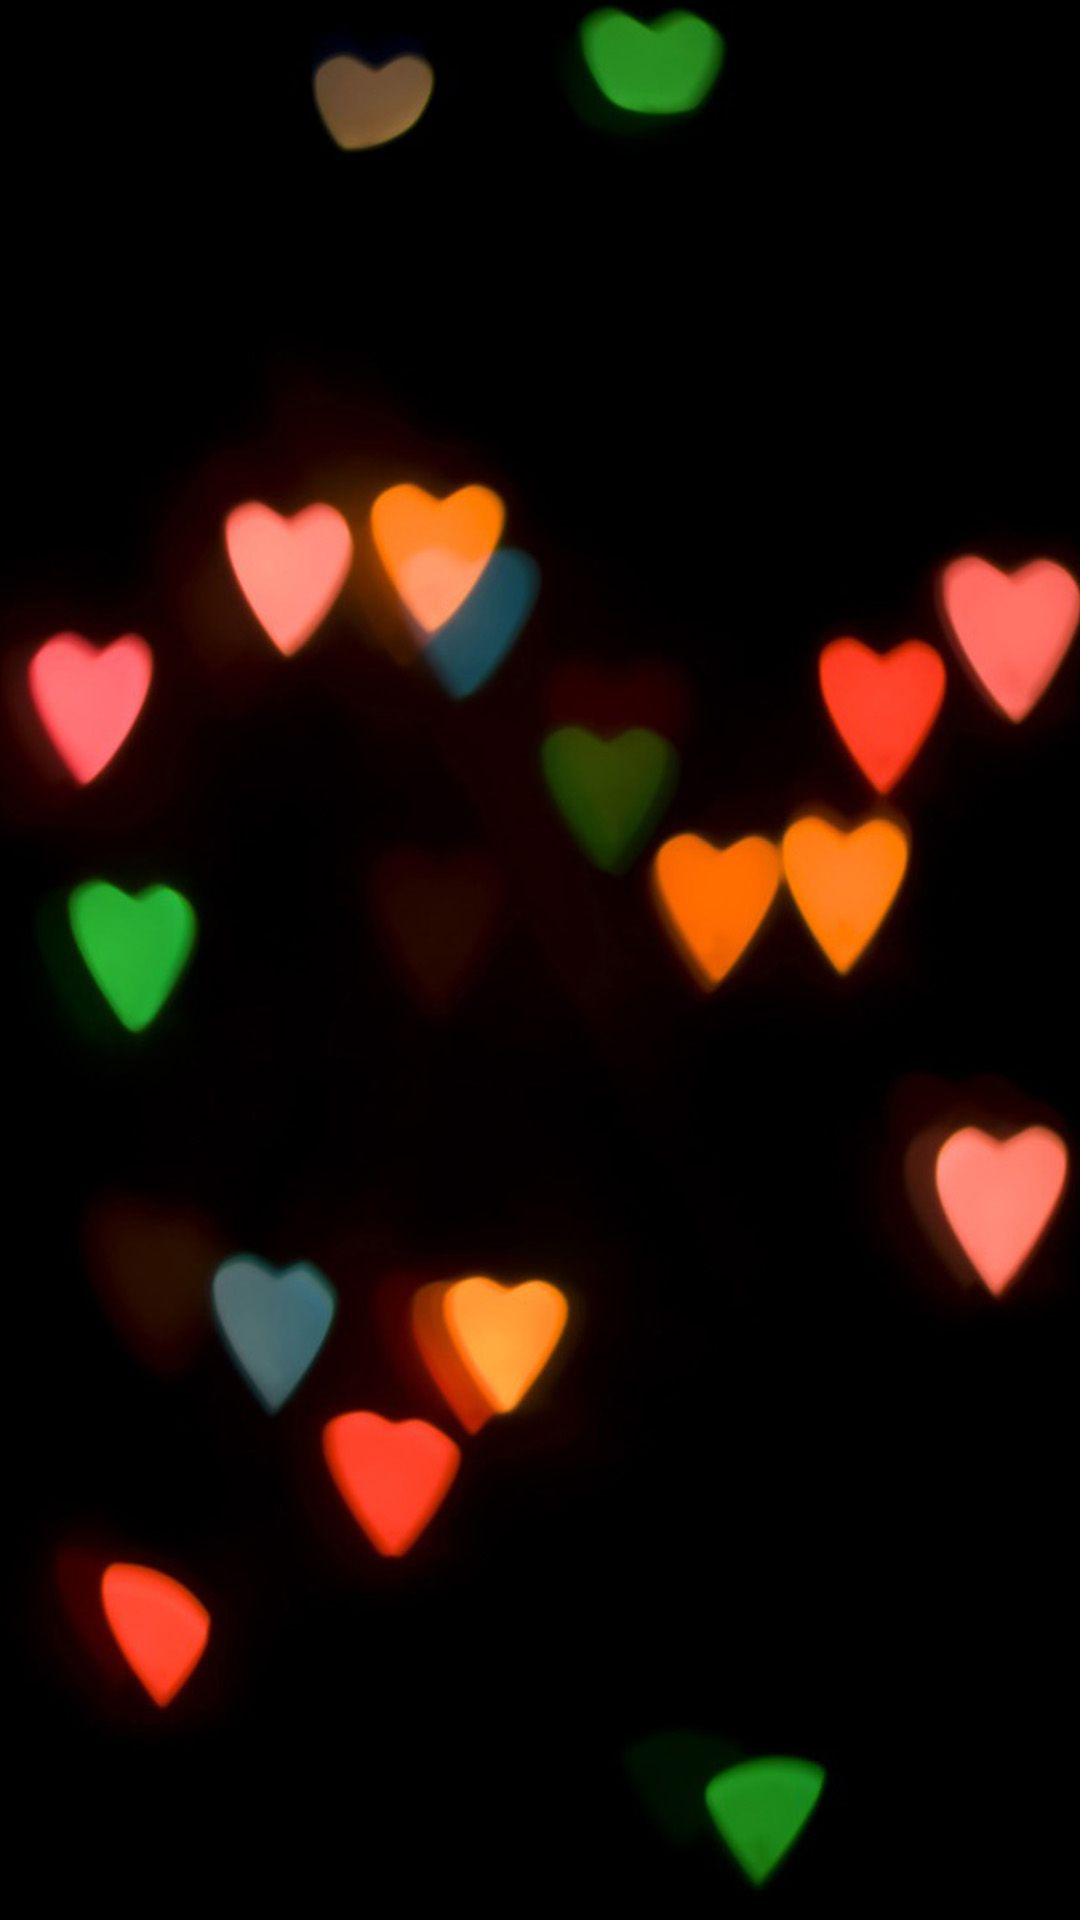 Wallpaper iphone cute love - Abstract Colorful Love Light In Dark Iphone 6 Plus Wallpaper